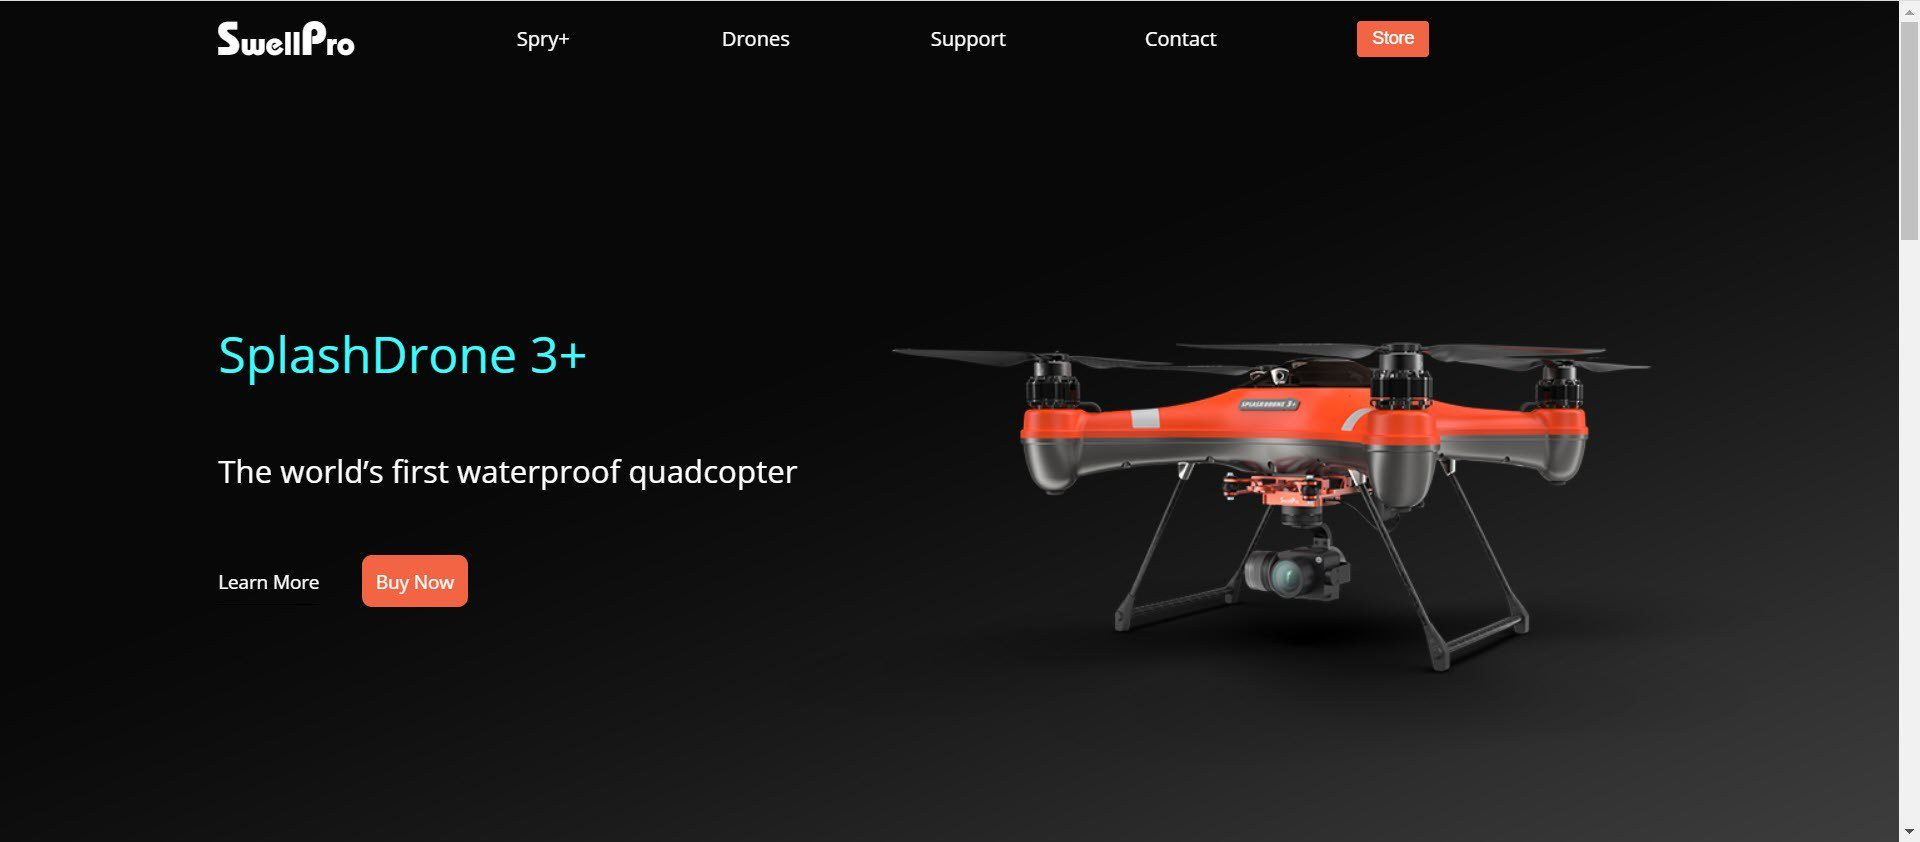 Drone Affiliate Programs - Swellpro